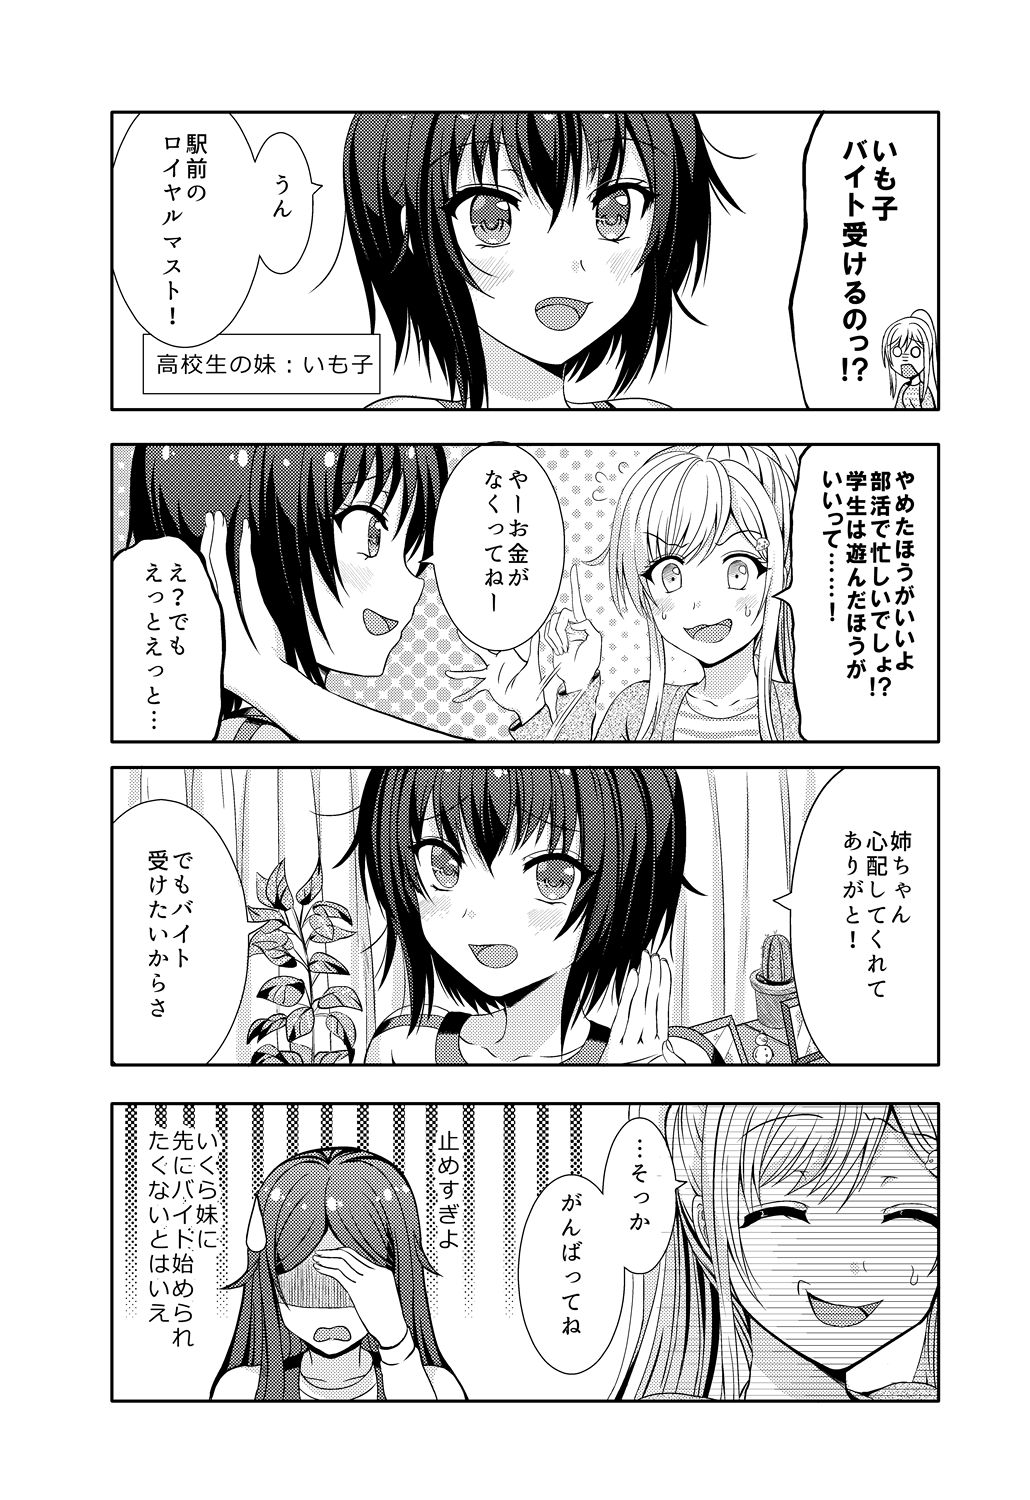 3girls 4koma aldehyde blush cactus check_translation comic facepalm flying_sweatdrops greyscale highres imoko_(neeko's_sister) long_hair monochrome multiple_girls neeko neeko's_mother original ponytail short_hair sweat sweatdrop translation_request